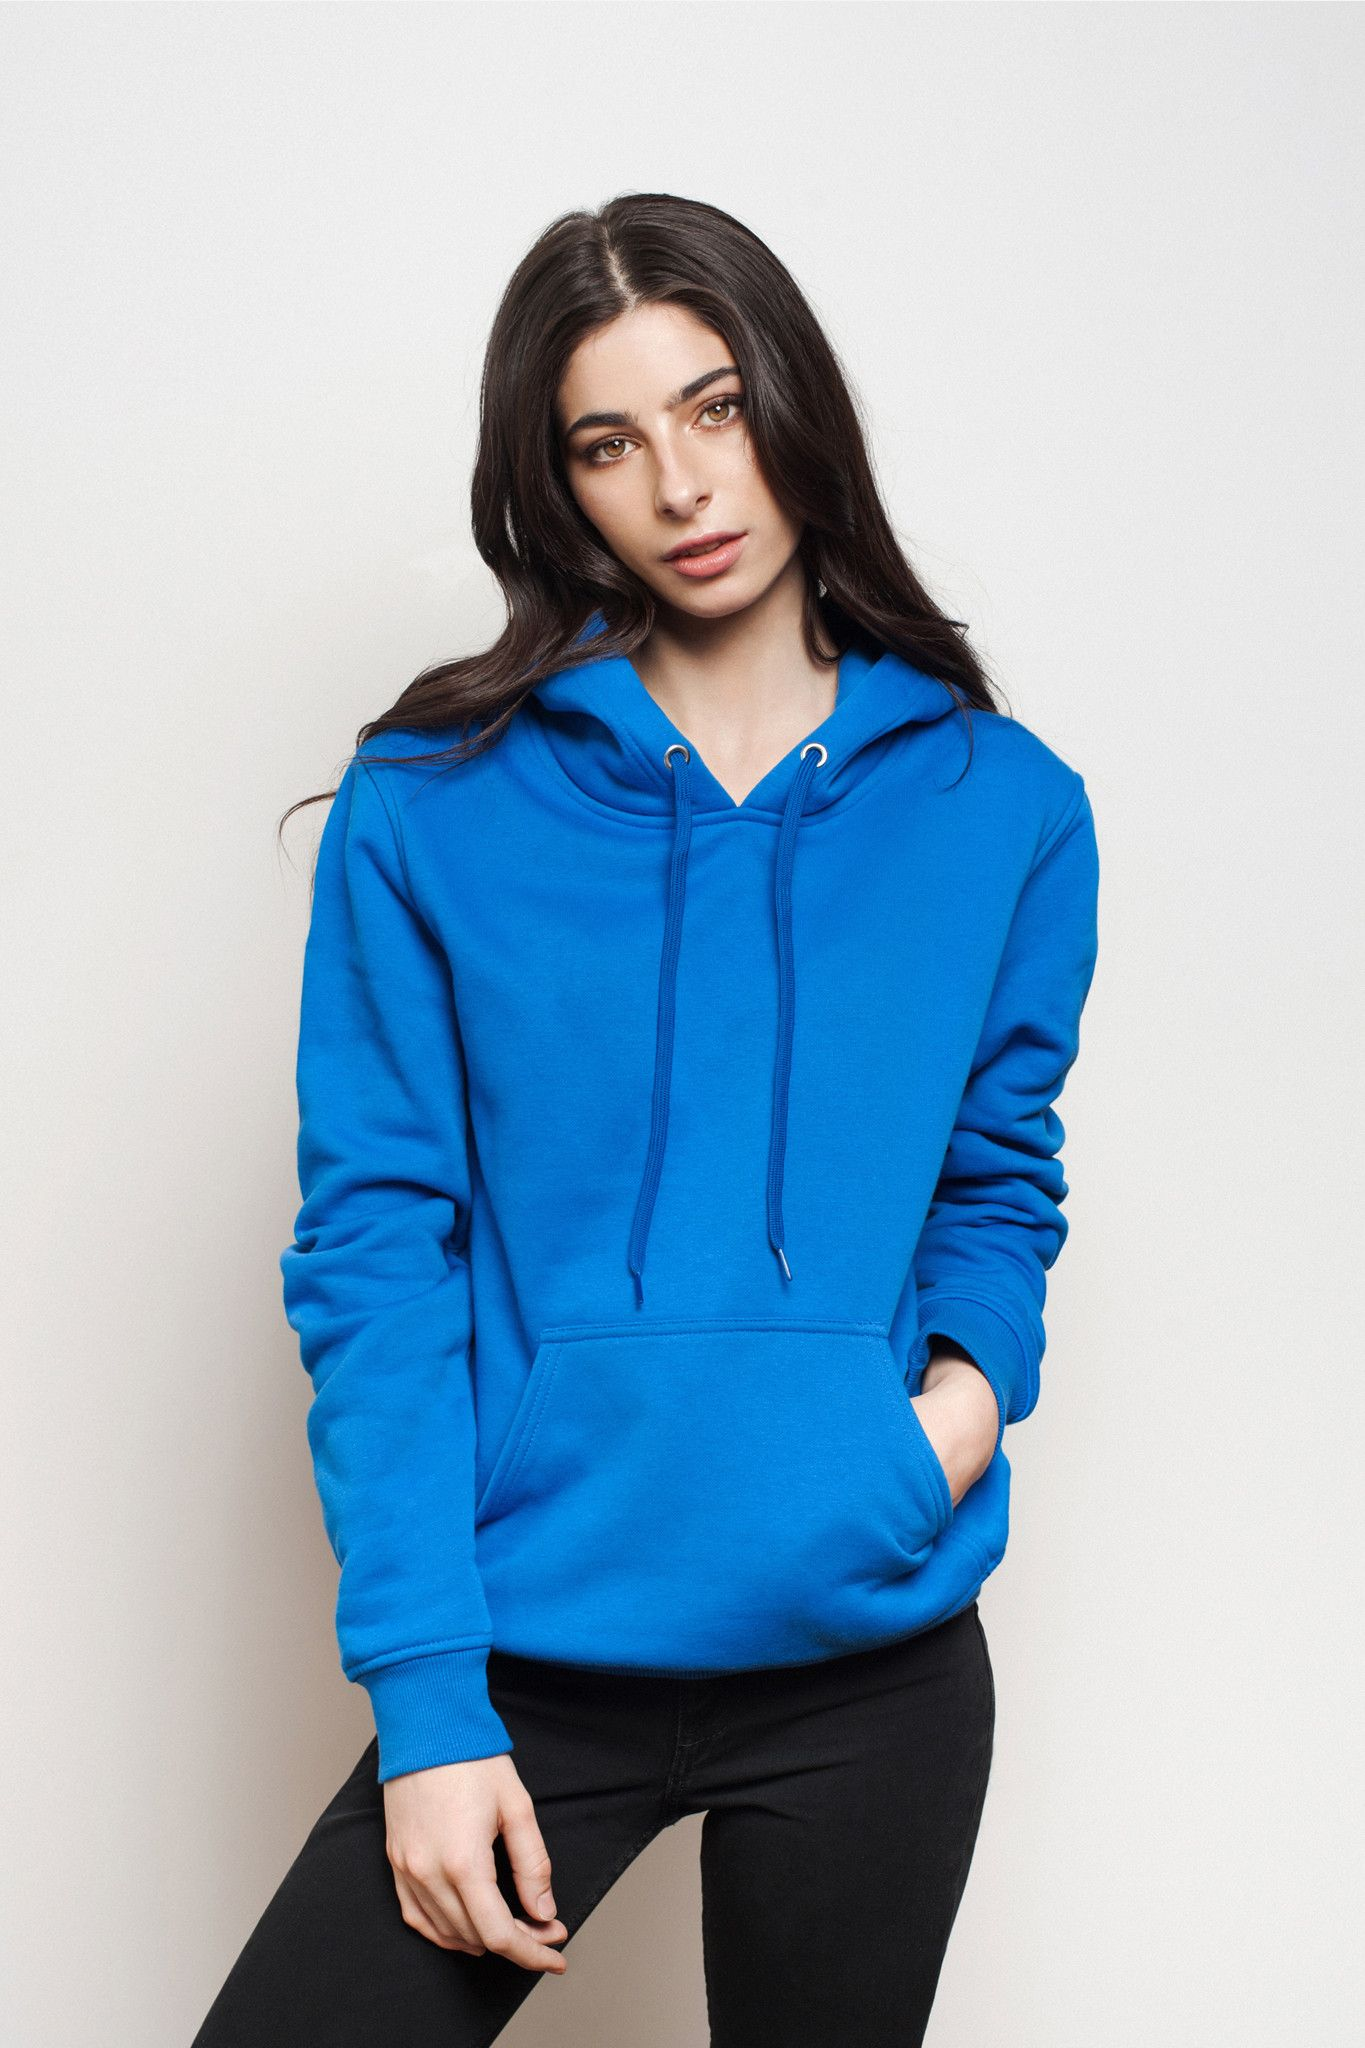 d573c538b38bd Women Royal Blue Pullover Hoodie. Long sleeve